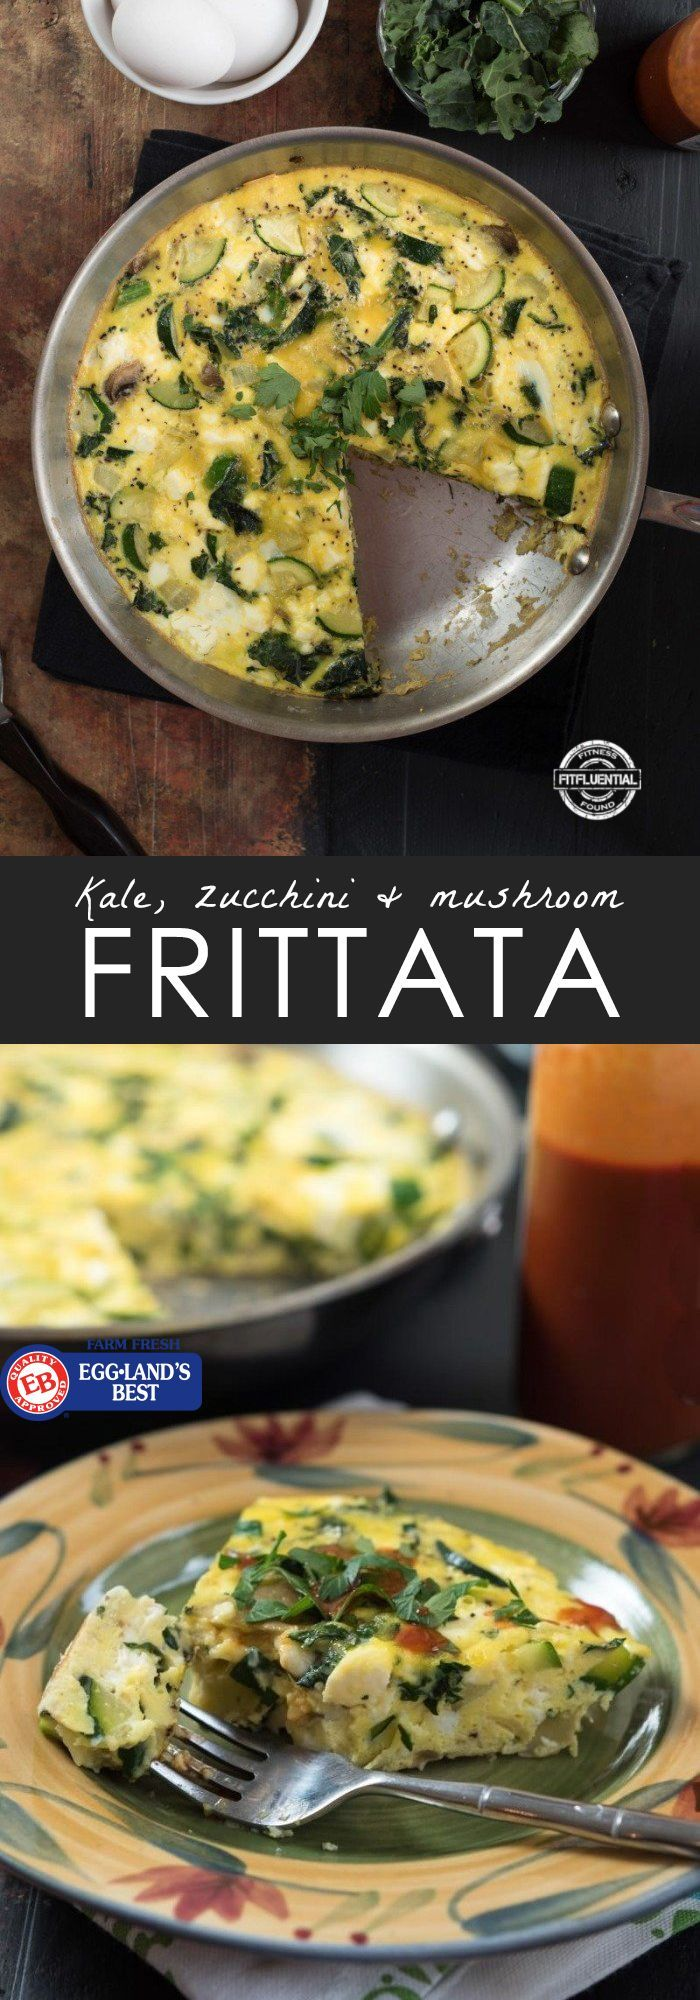 The perfect healthy recipe for breakfast! Kale, zucchini and mushroom egg frittata.